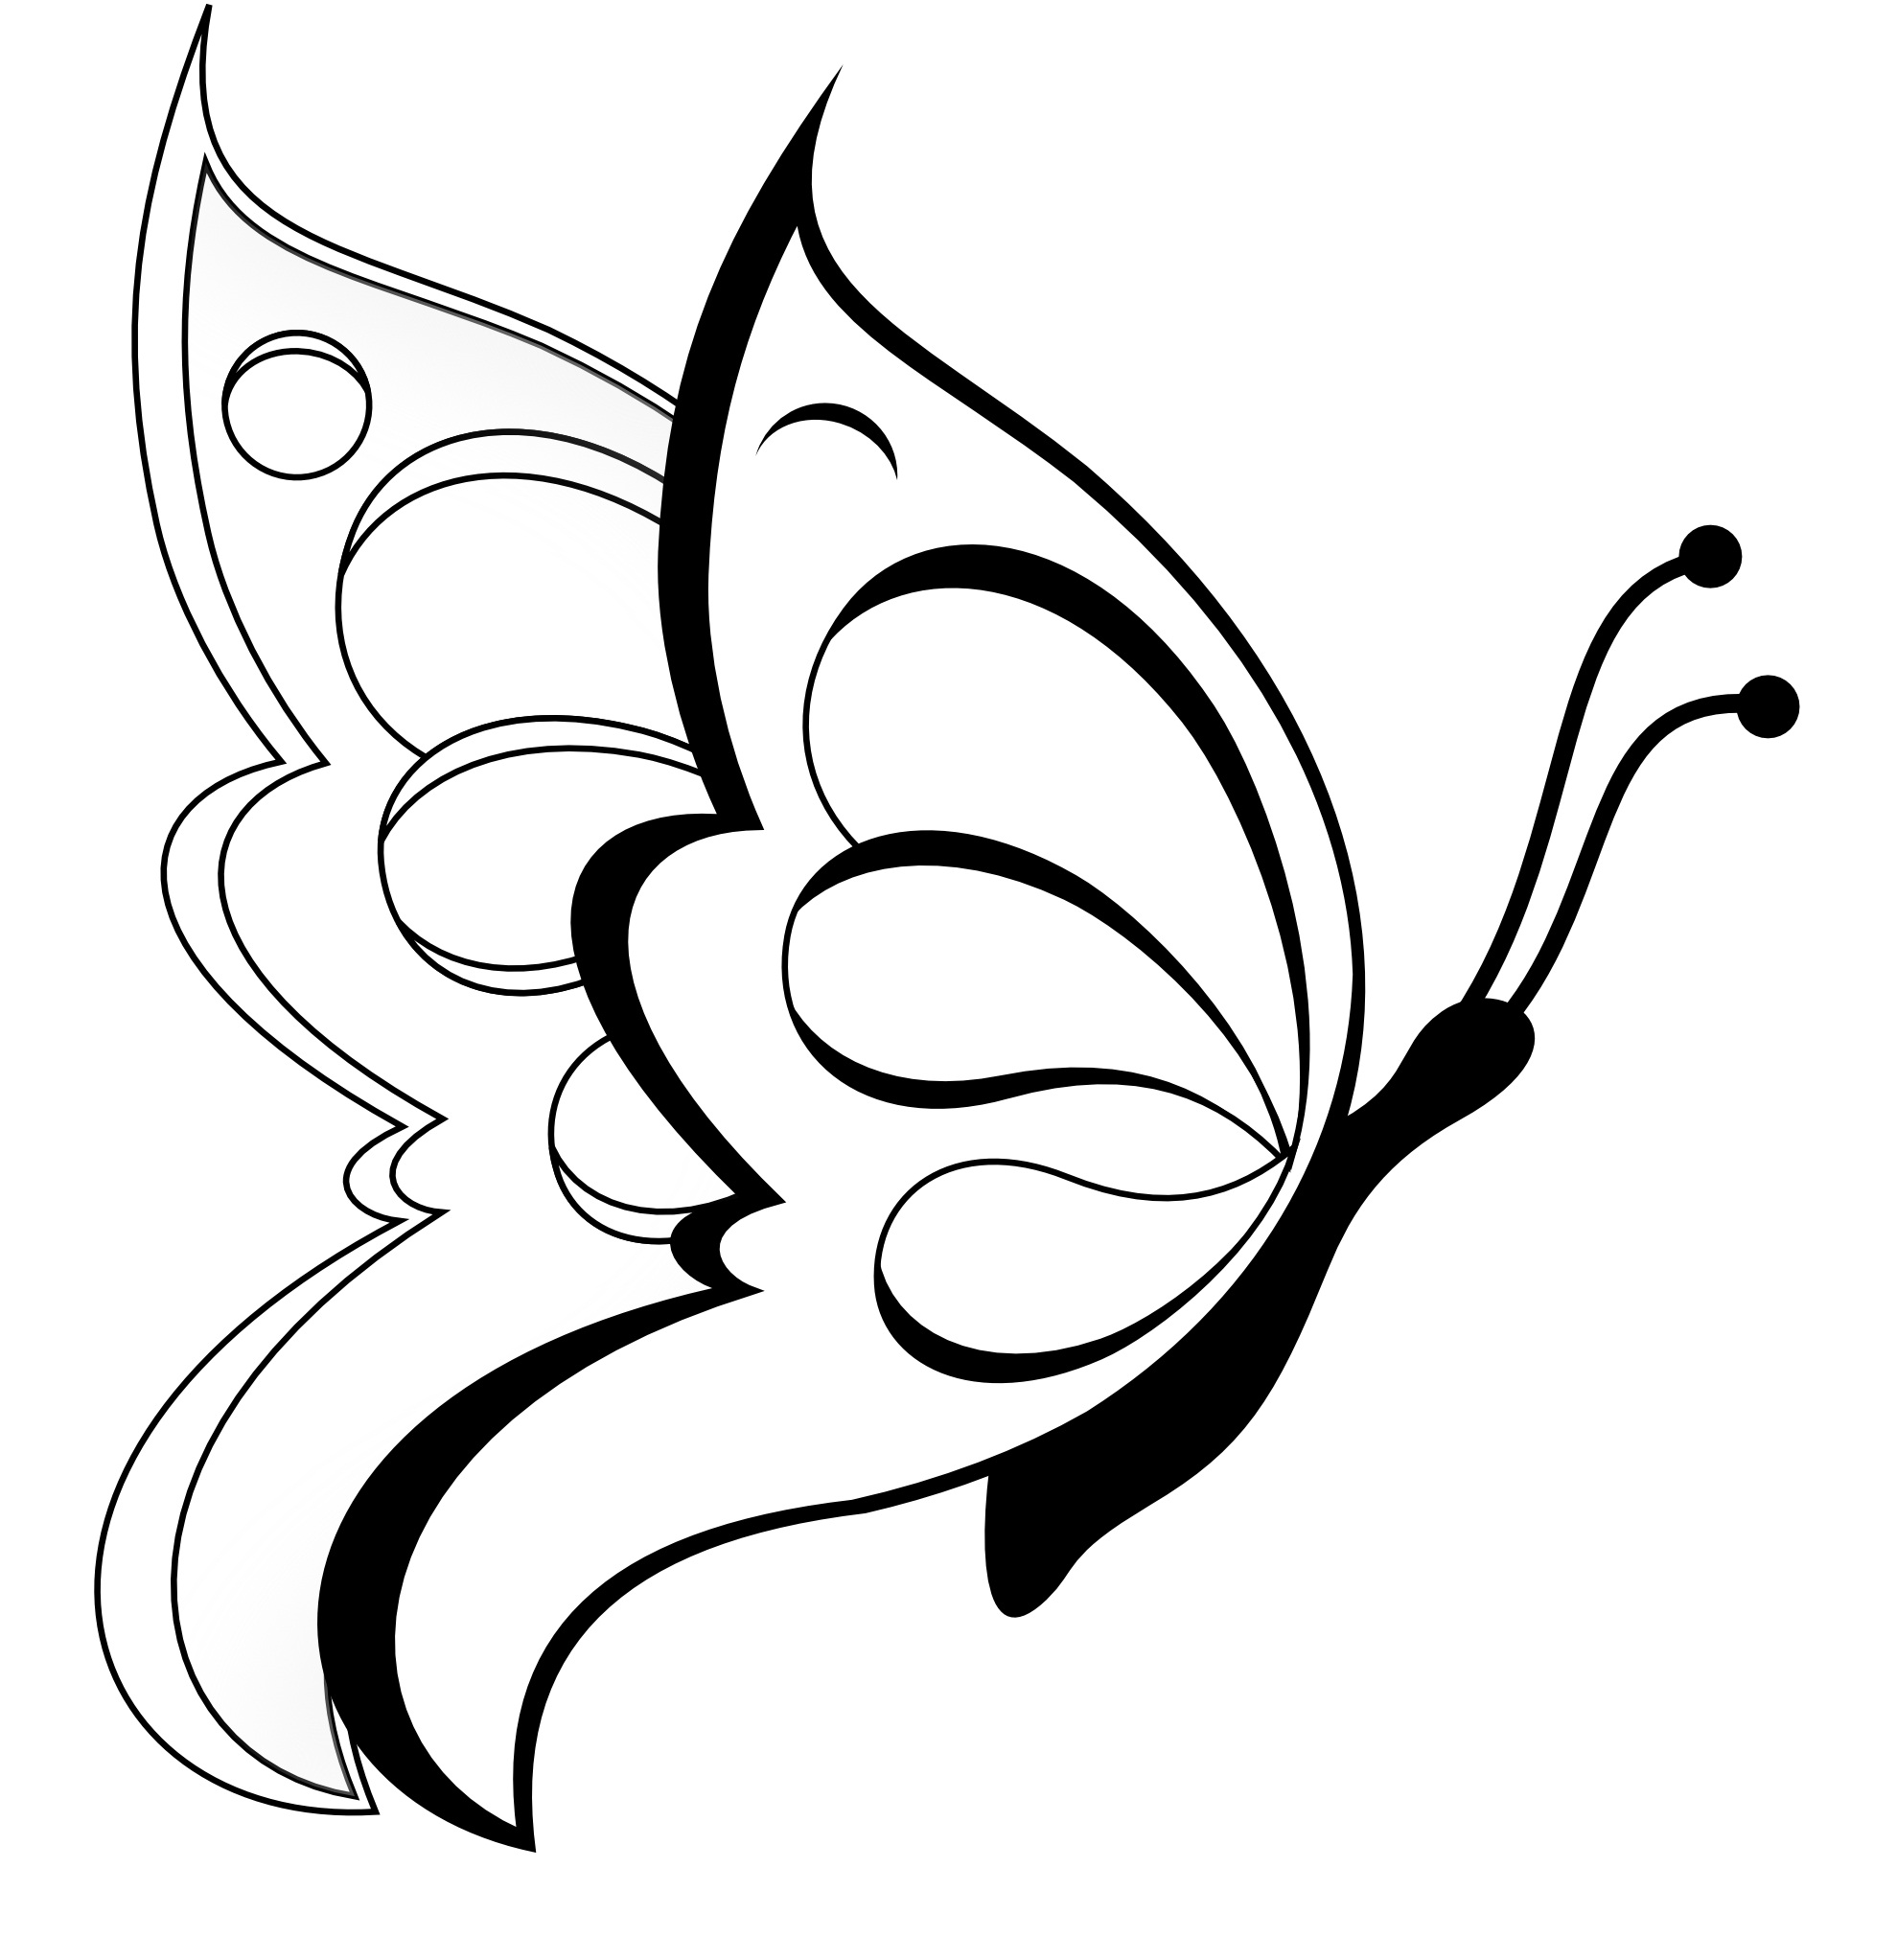 pictures to color of butterflies free printable butterfly coloring pages for kids color butterflies to pictures of